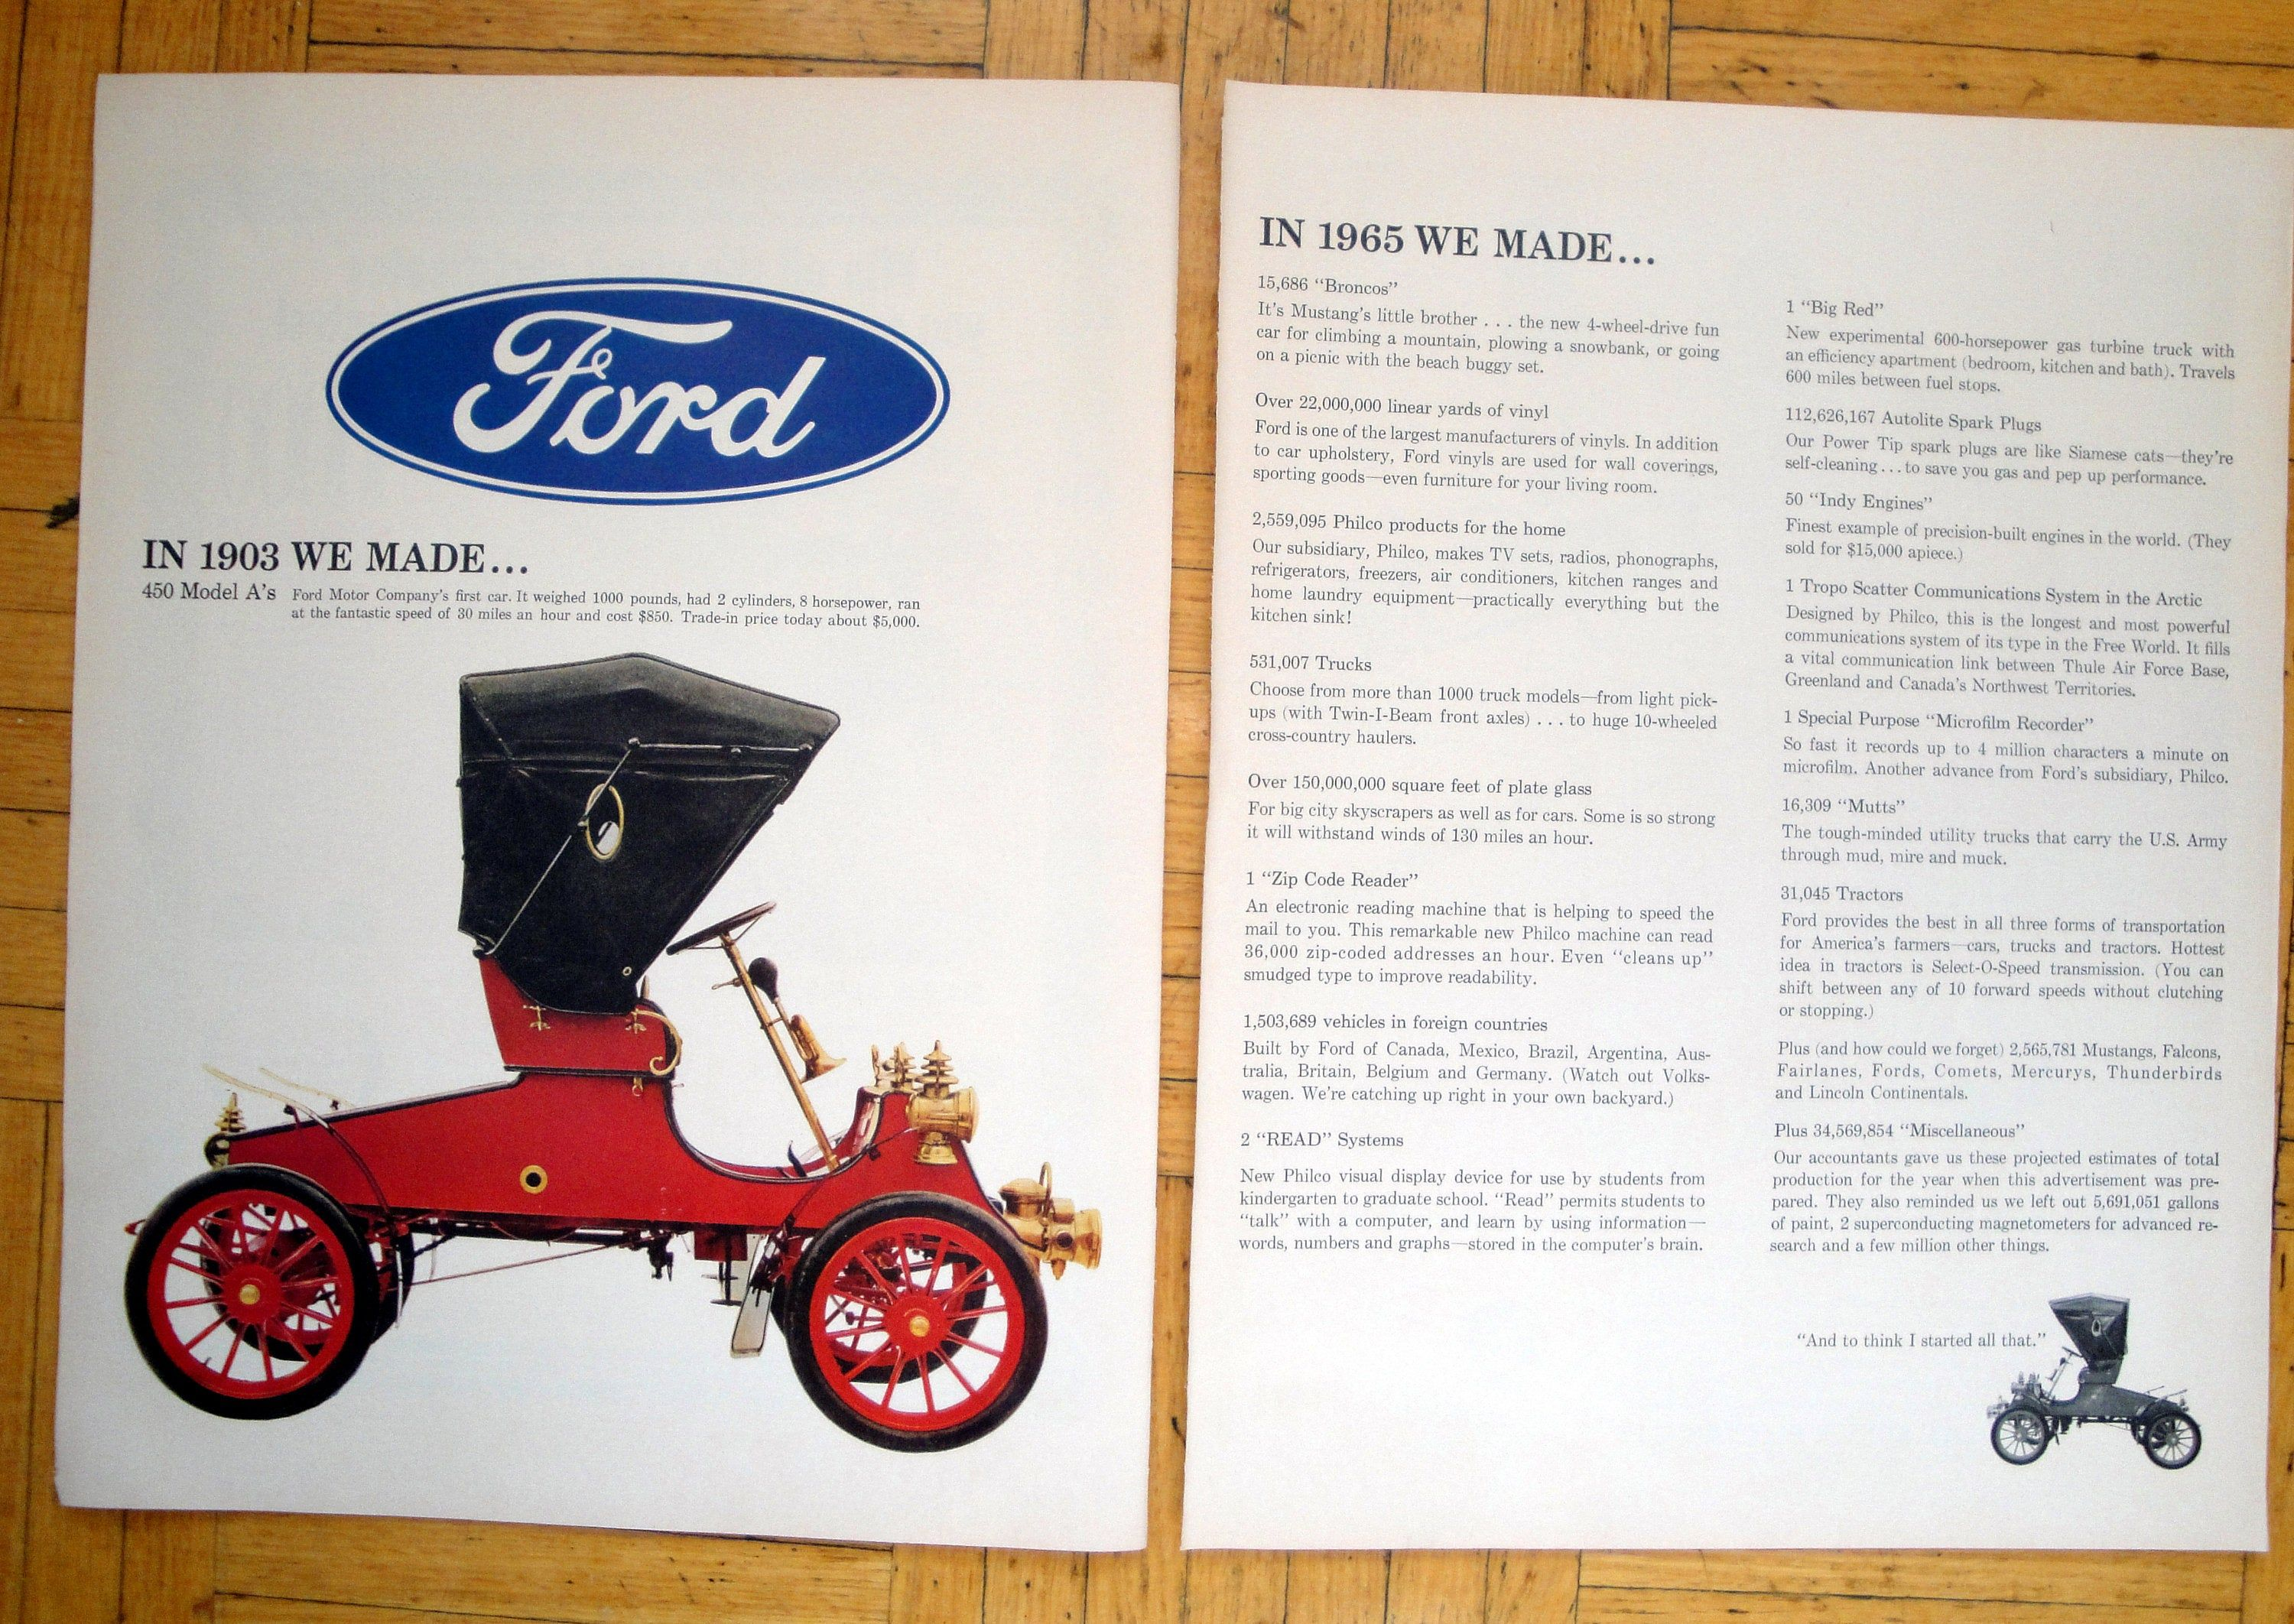 1966 Ford Featuring 1903 Model A 8 Hp Original 2 Page 13 5 10 5 Magazine Ad Ford Ford Motor Company Ford Motor